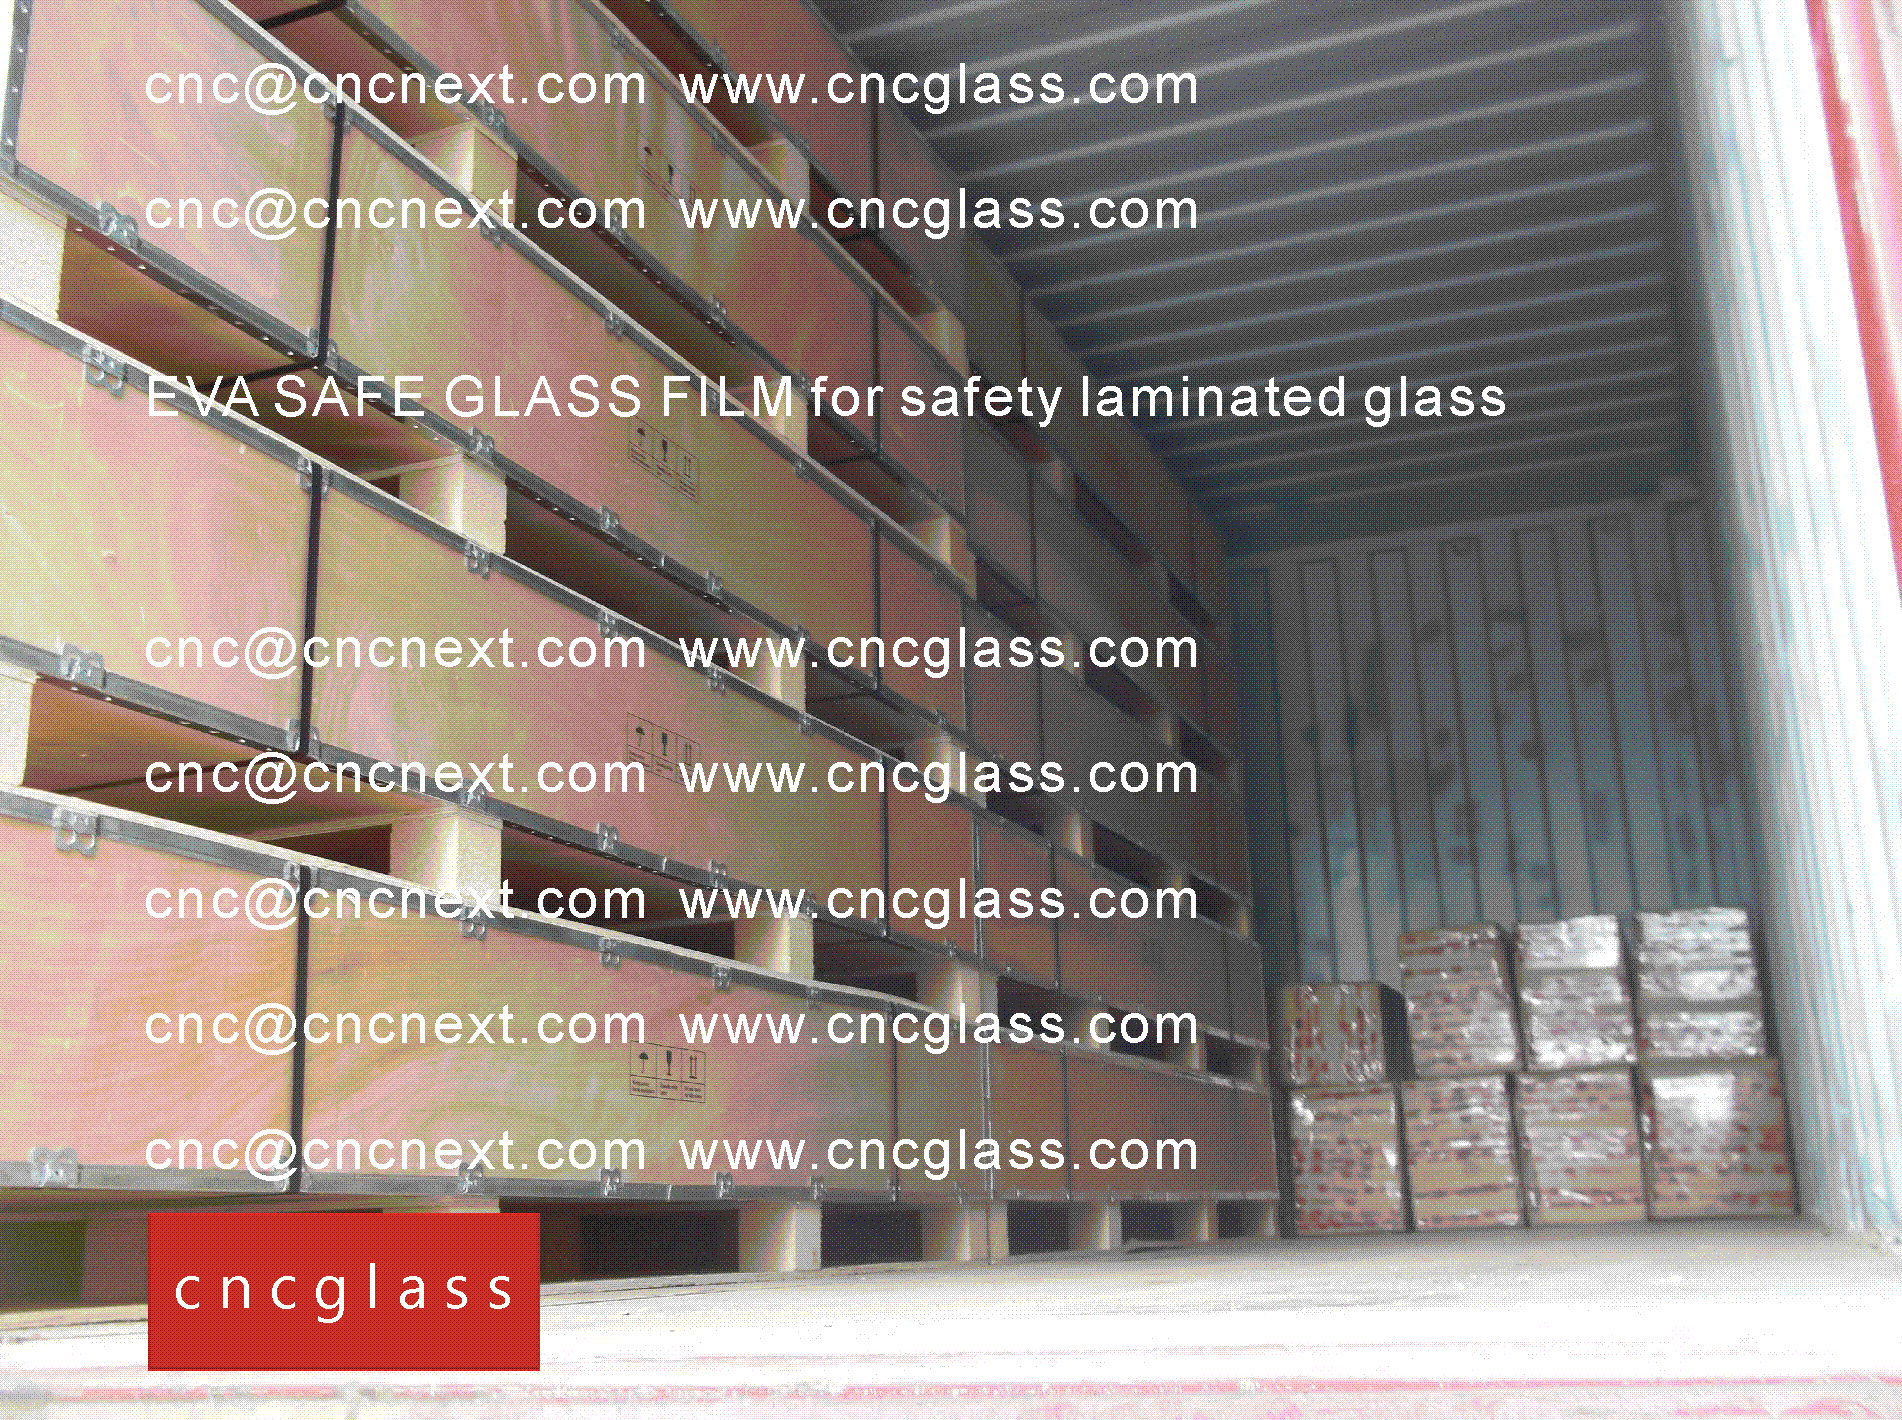 003 EVA SAFE GLASS FILM LOADING CONTAINER (SAFETY LAMINATED GLASS)